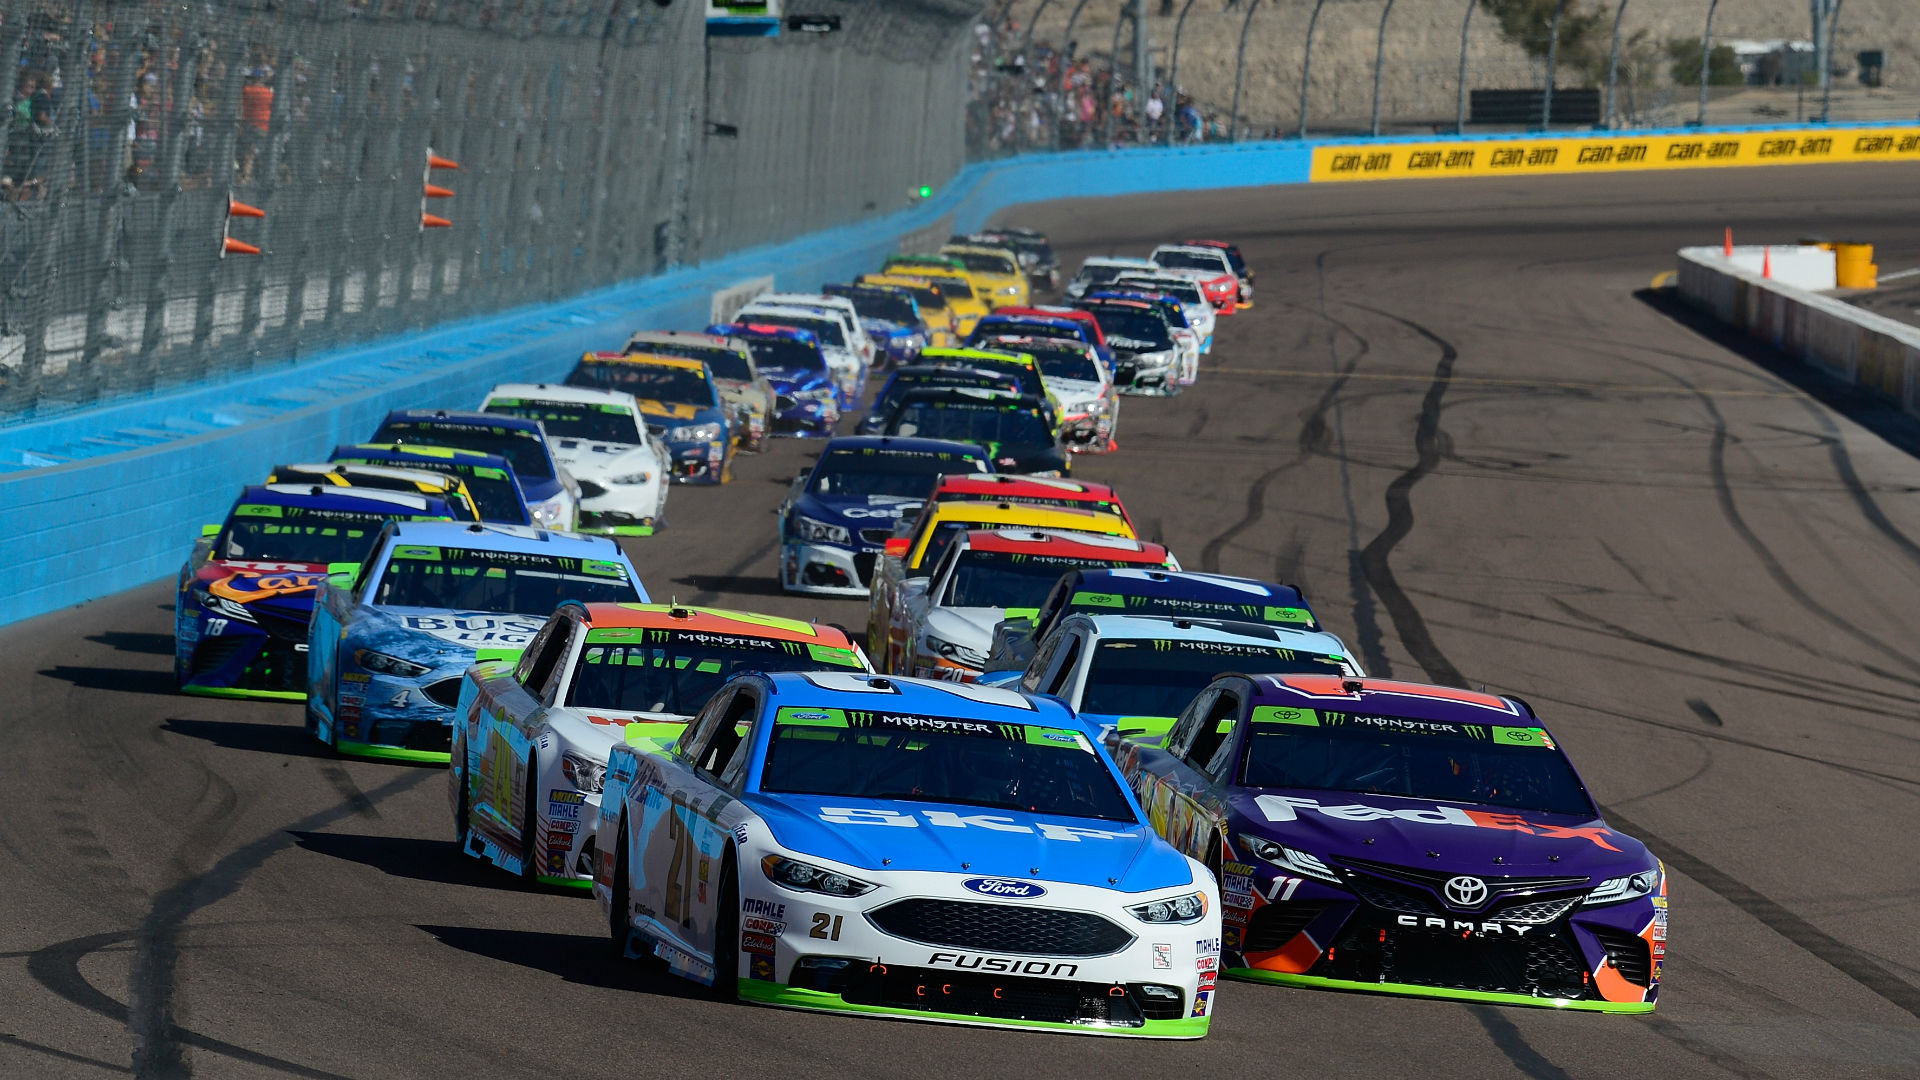 picture about Nascar Printable Schedule named NASCAR timetable 2019: Day, period, Tv set channels for each individual Cup